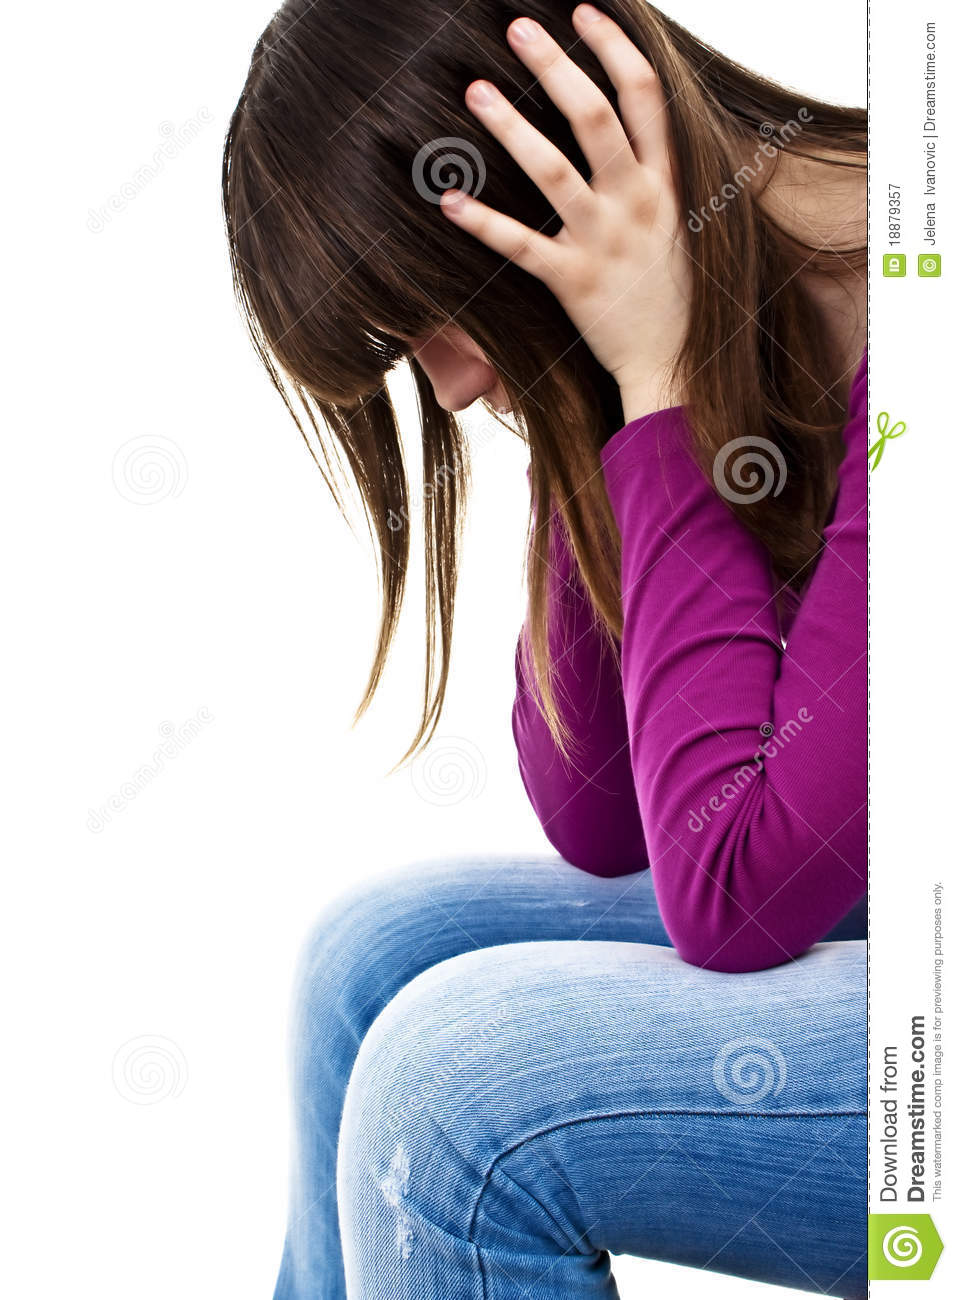 Teenage Girl Depression - Lost Love Stock Image - Image ...